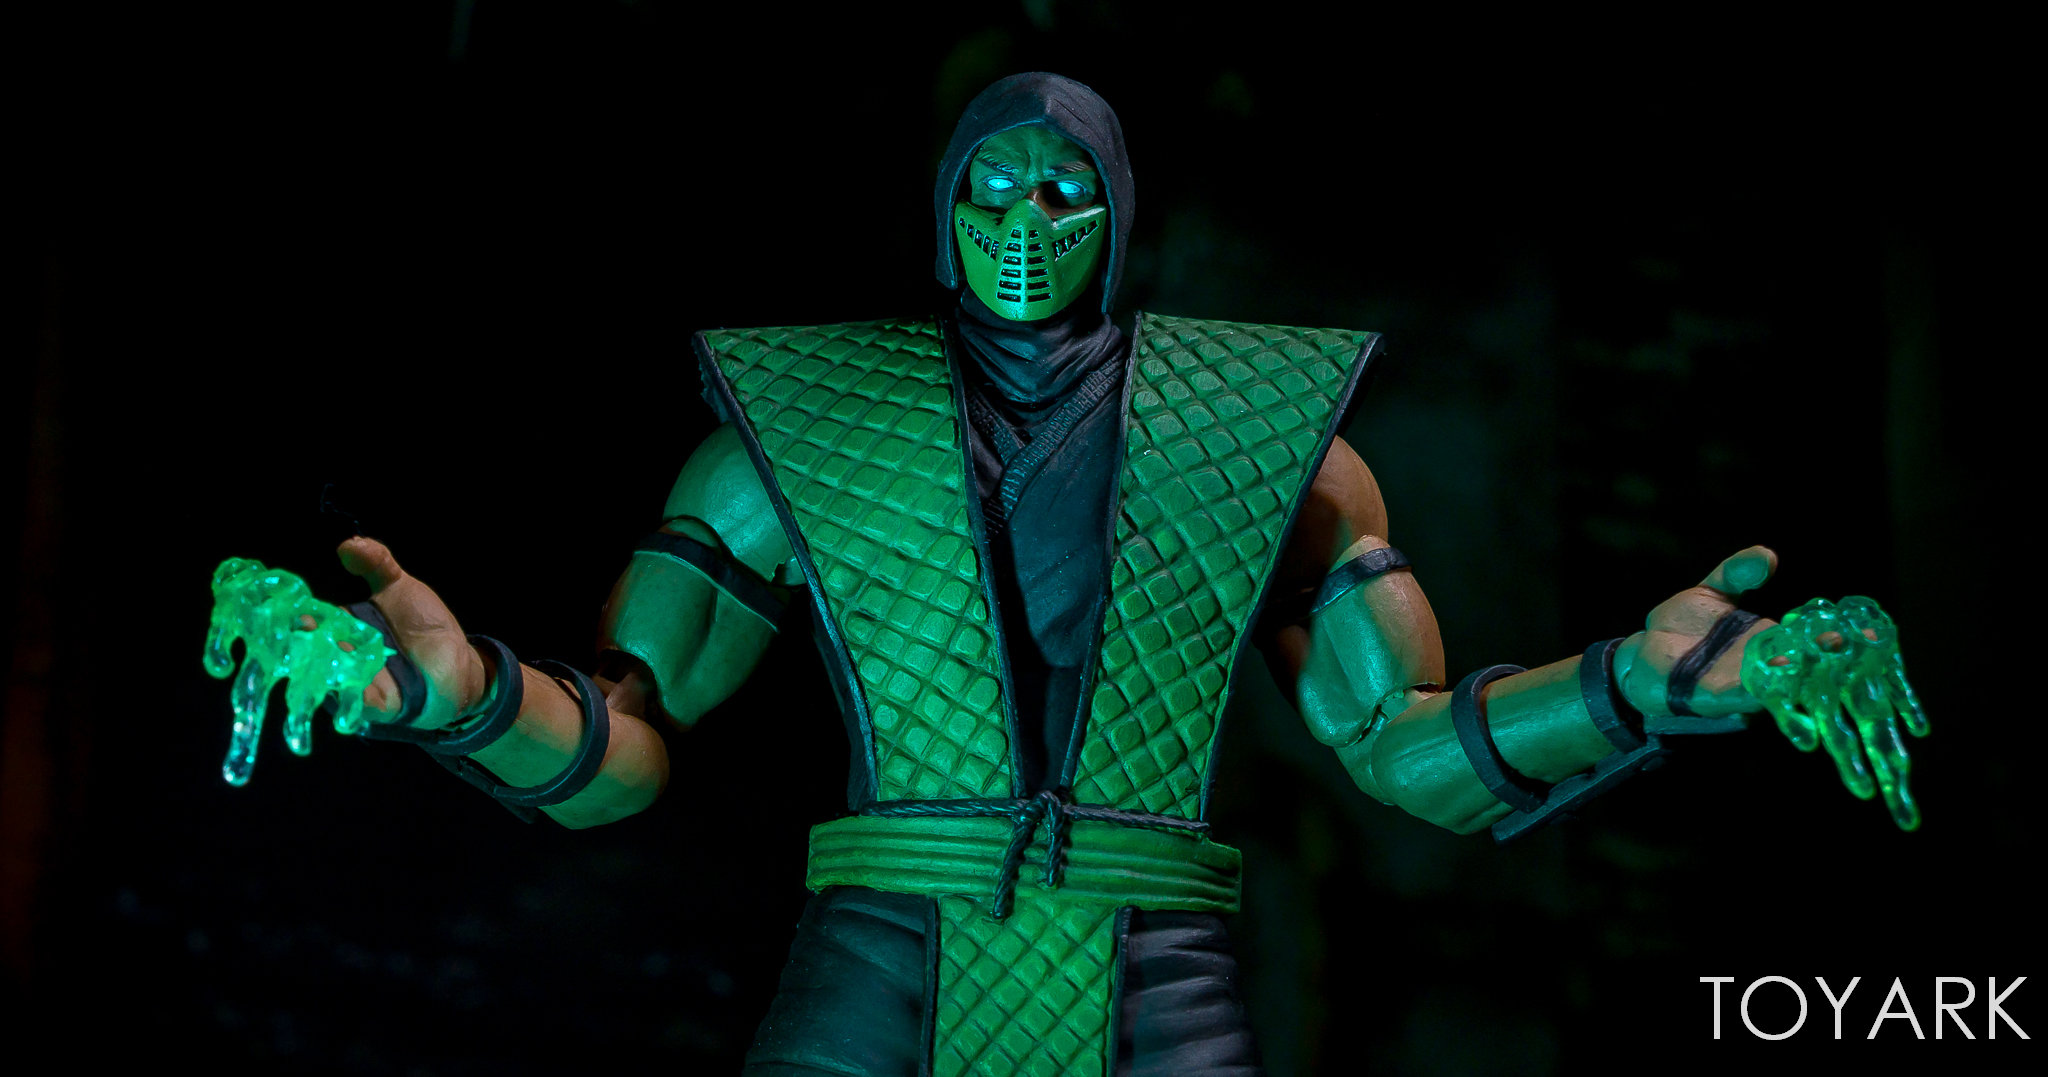 http://news.toyark.com/wp-content/uploads/sites/4/2018/02/Storm-Mortal-Kombat-Reptile-026.jpg